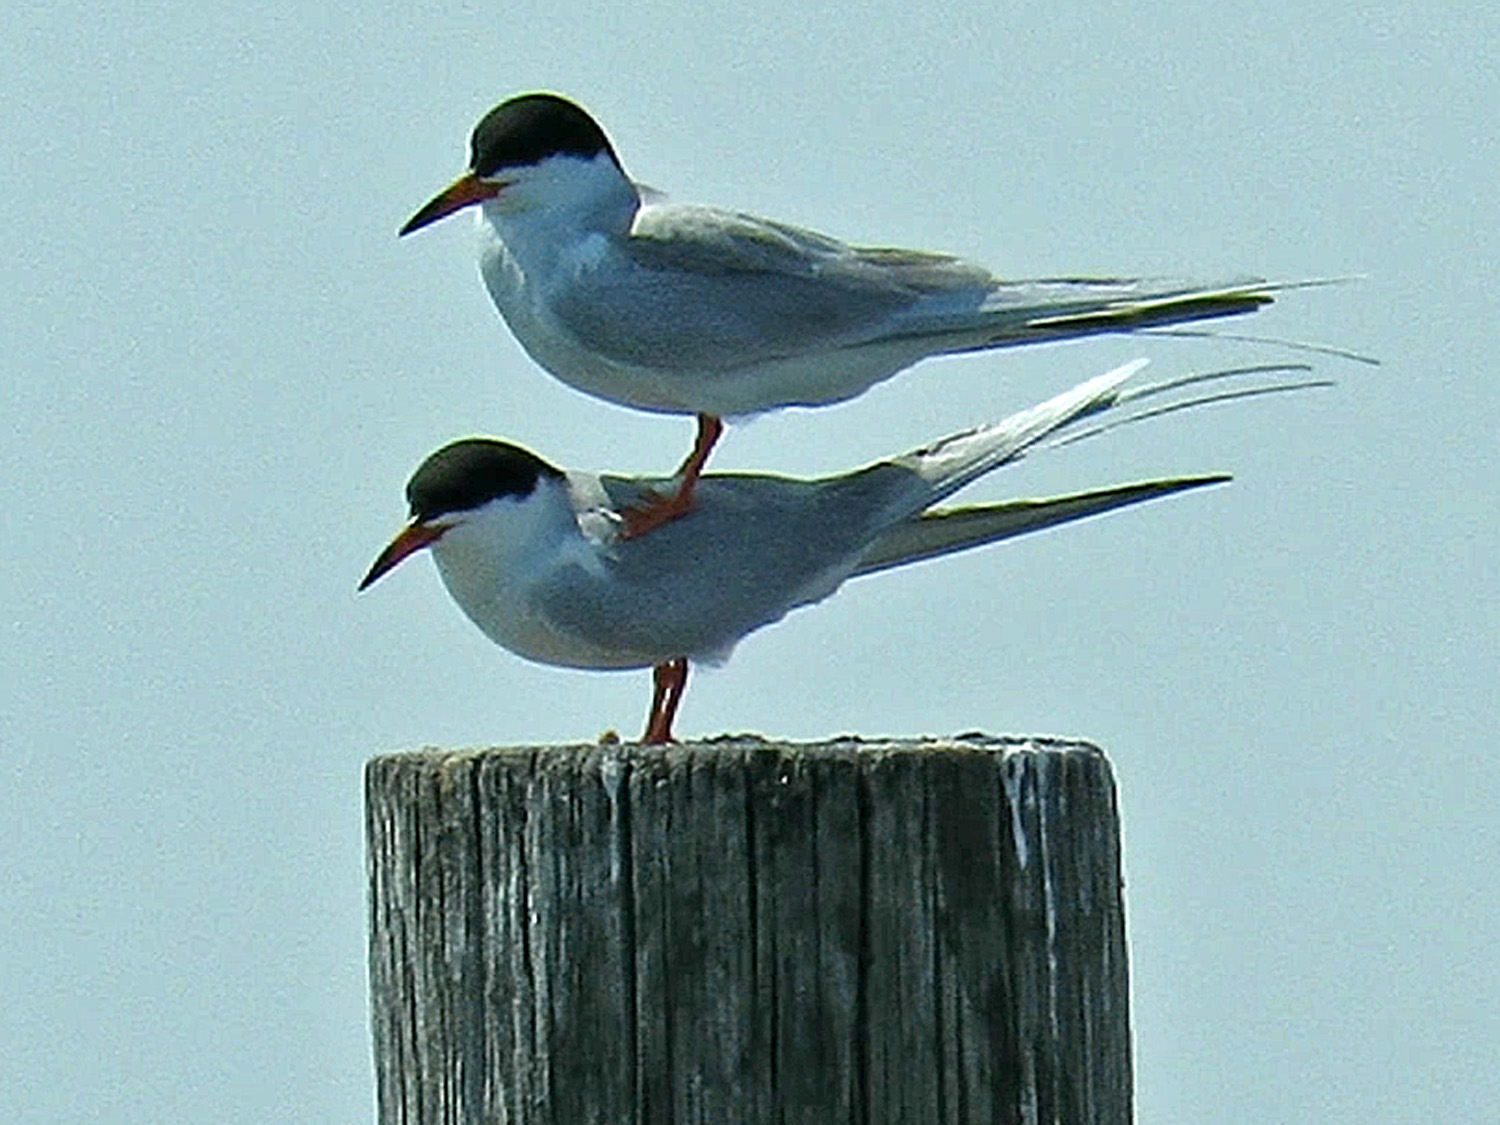 Forster's tern mating fail, May 3, 2018, Broad Channel American Park